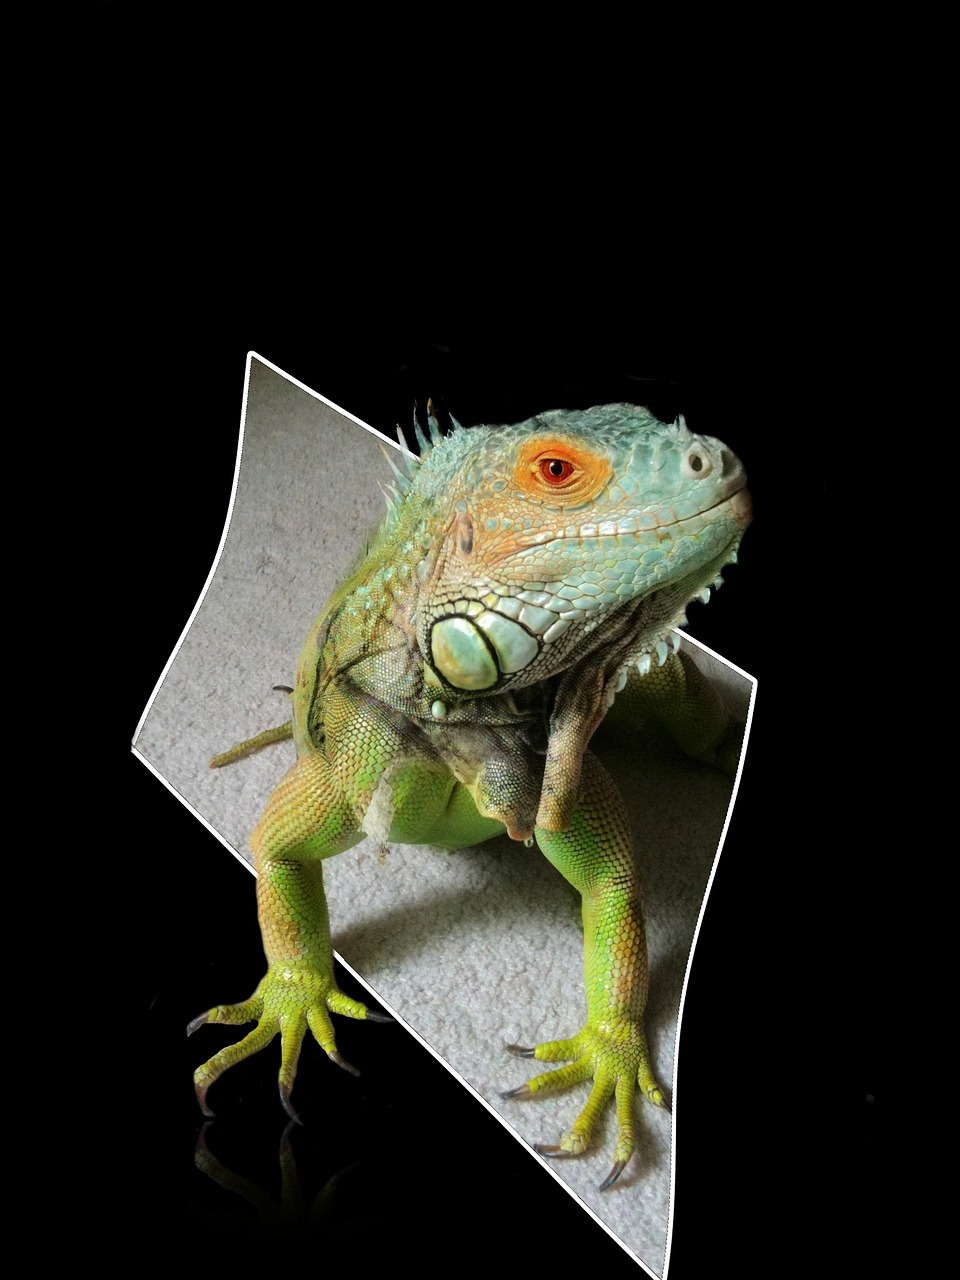 iguana reptile lizard free photo